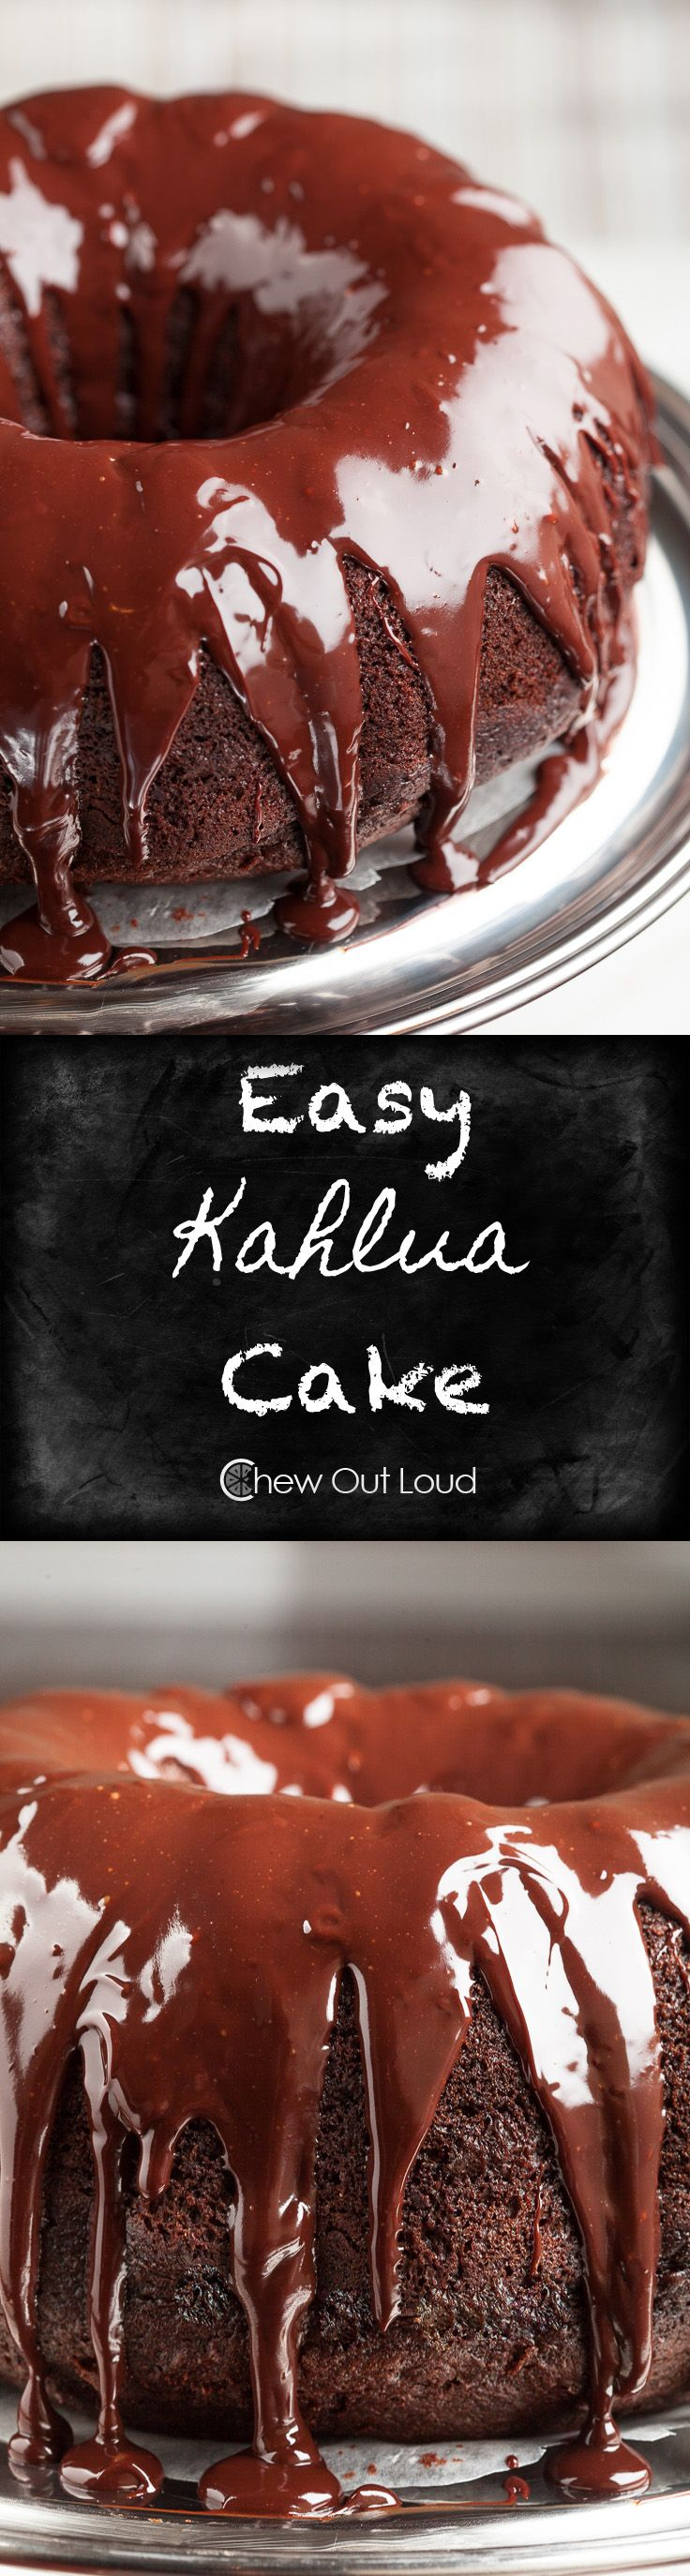 Easy Chocolate Kahlua Cake.  Low on time and need to impress?  Make this moist, chocolatey Kahlua cake.  Drizzled with velvety ganache.  Almost effortless. #holiday #dessert